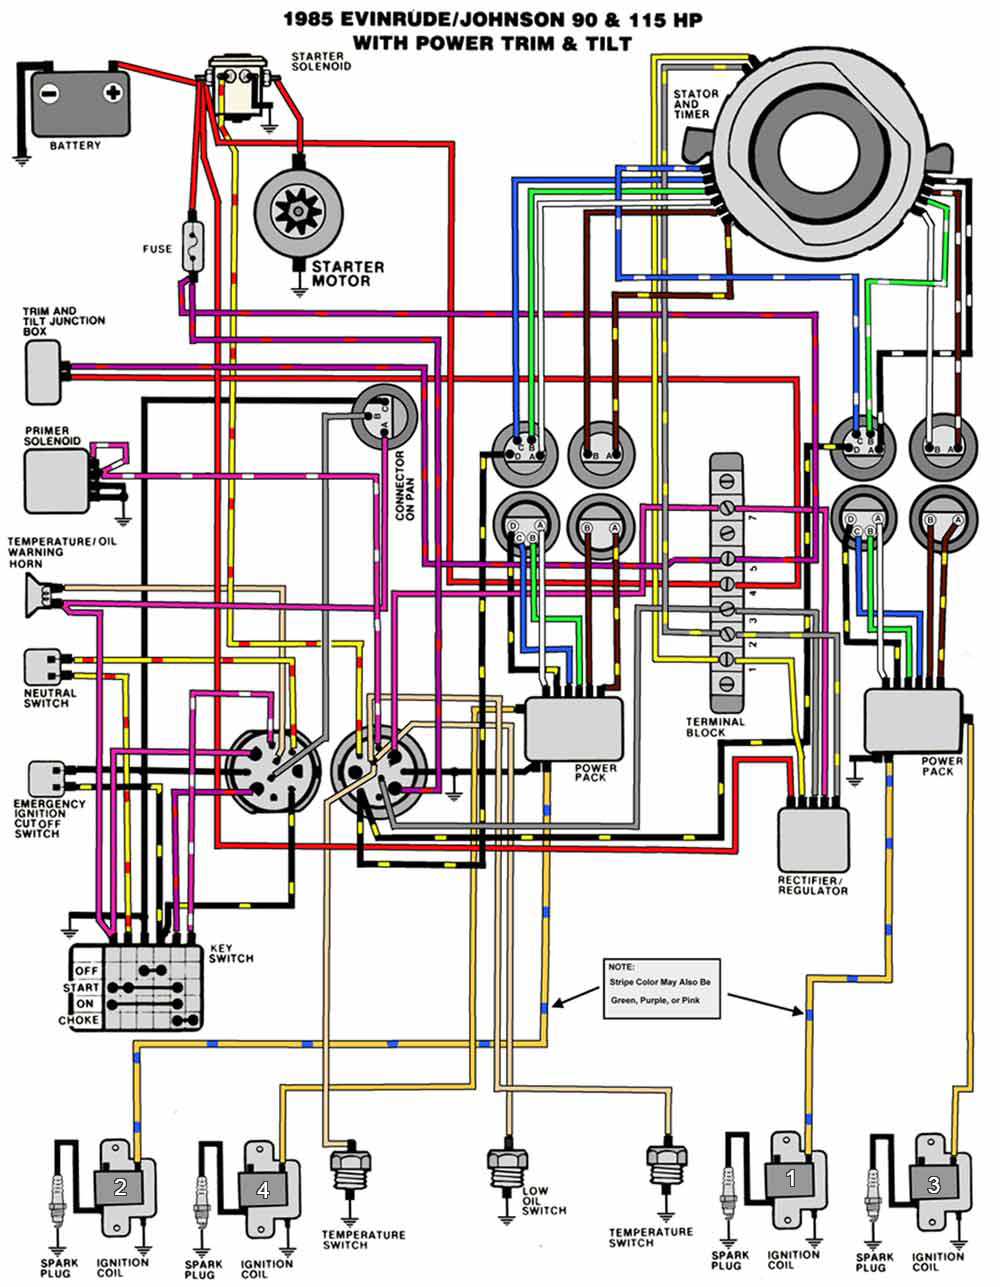 1985_90_115TnT evinrude etec wiring diagram evinrude e tec wire color \u2022 wiring tilt sensor wiring diagram at gsmx.co